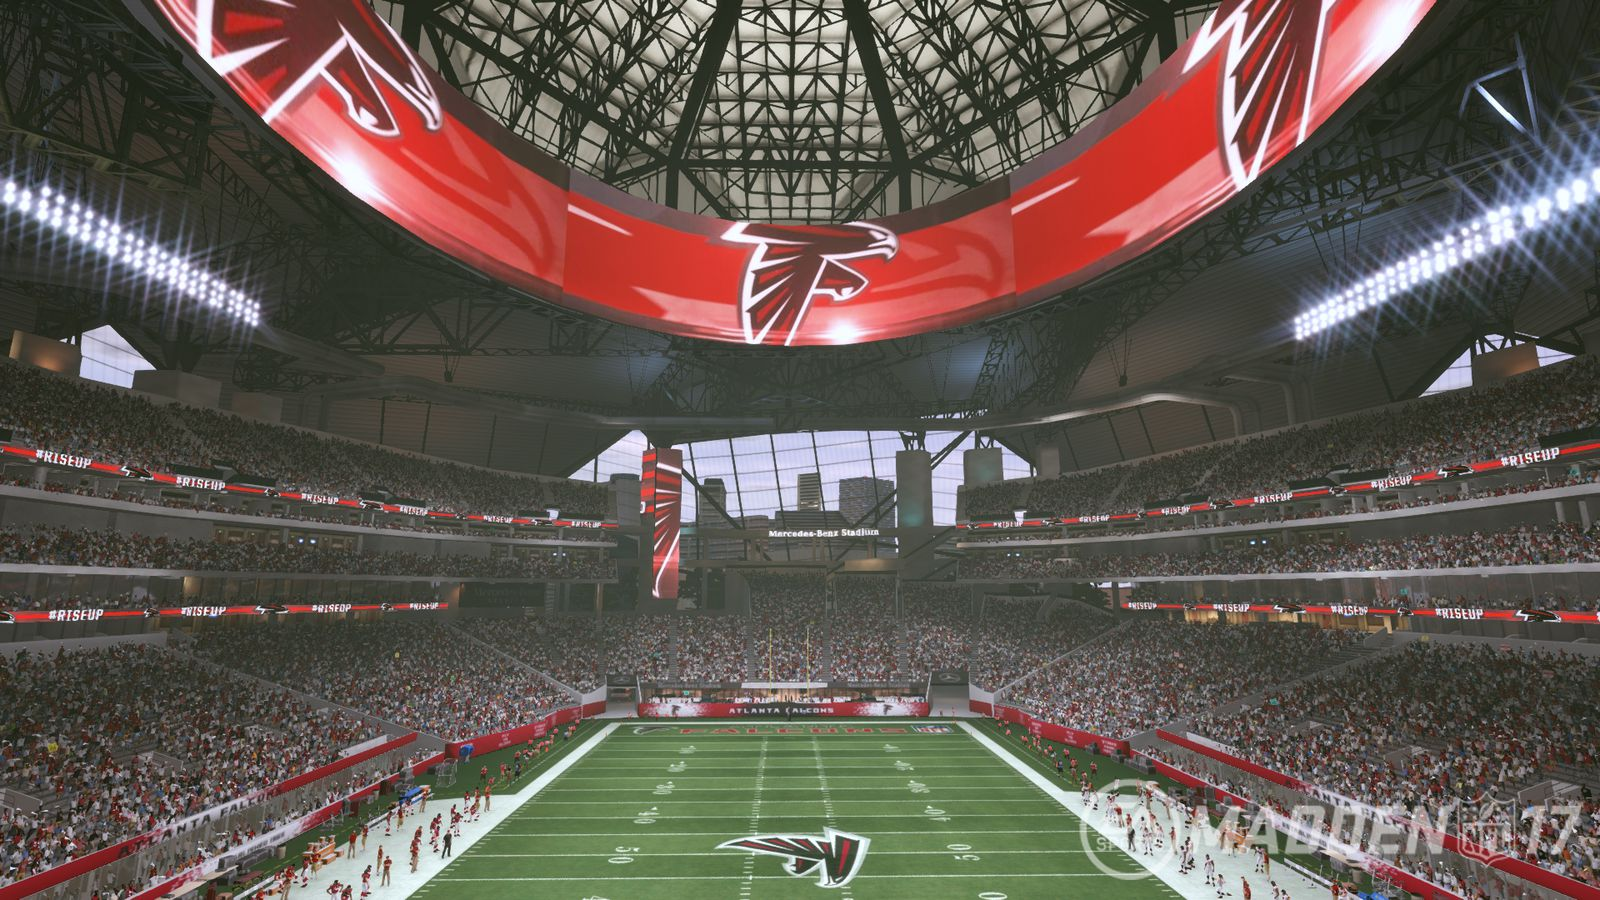 Mercedes benz stadium in madden nfl 17 the falcoholic for Mercedes benz stadium calendar